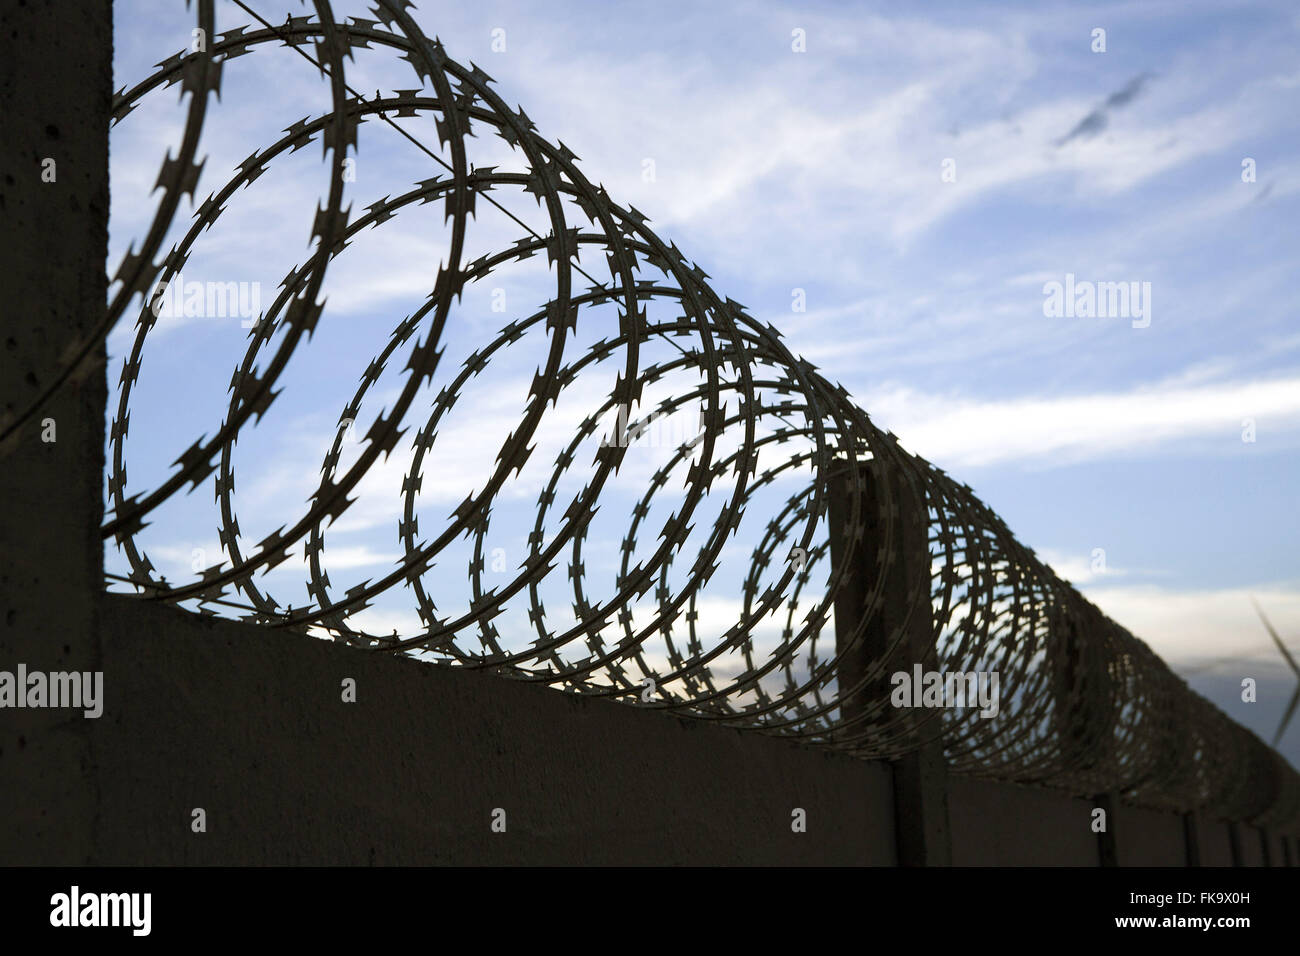 Fence with barbed wire in a secure area of the wind farm Source of the Winds - Stock Image